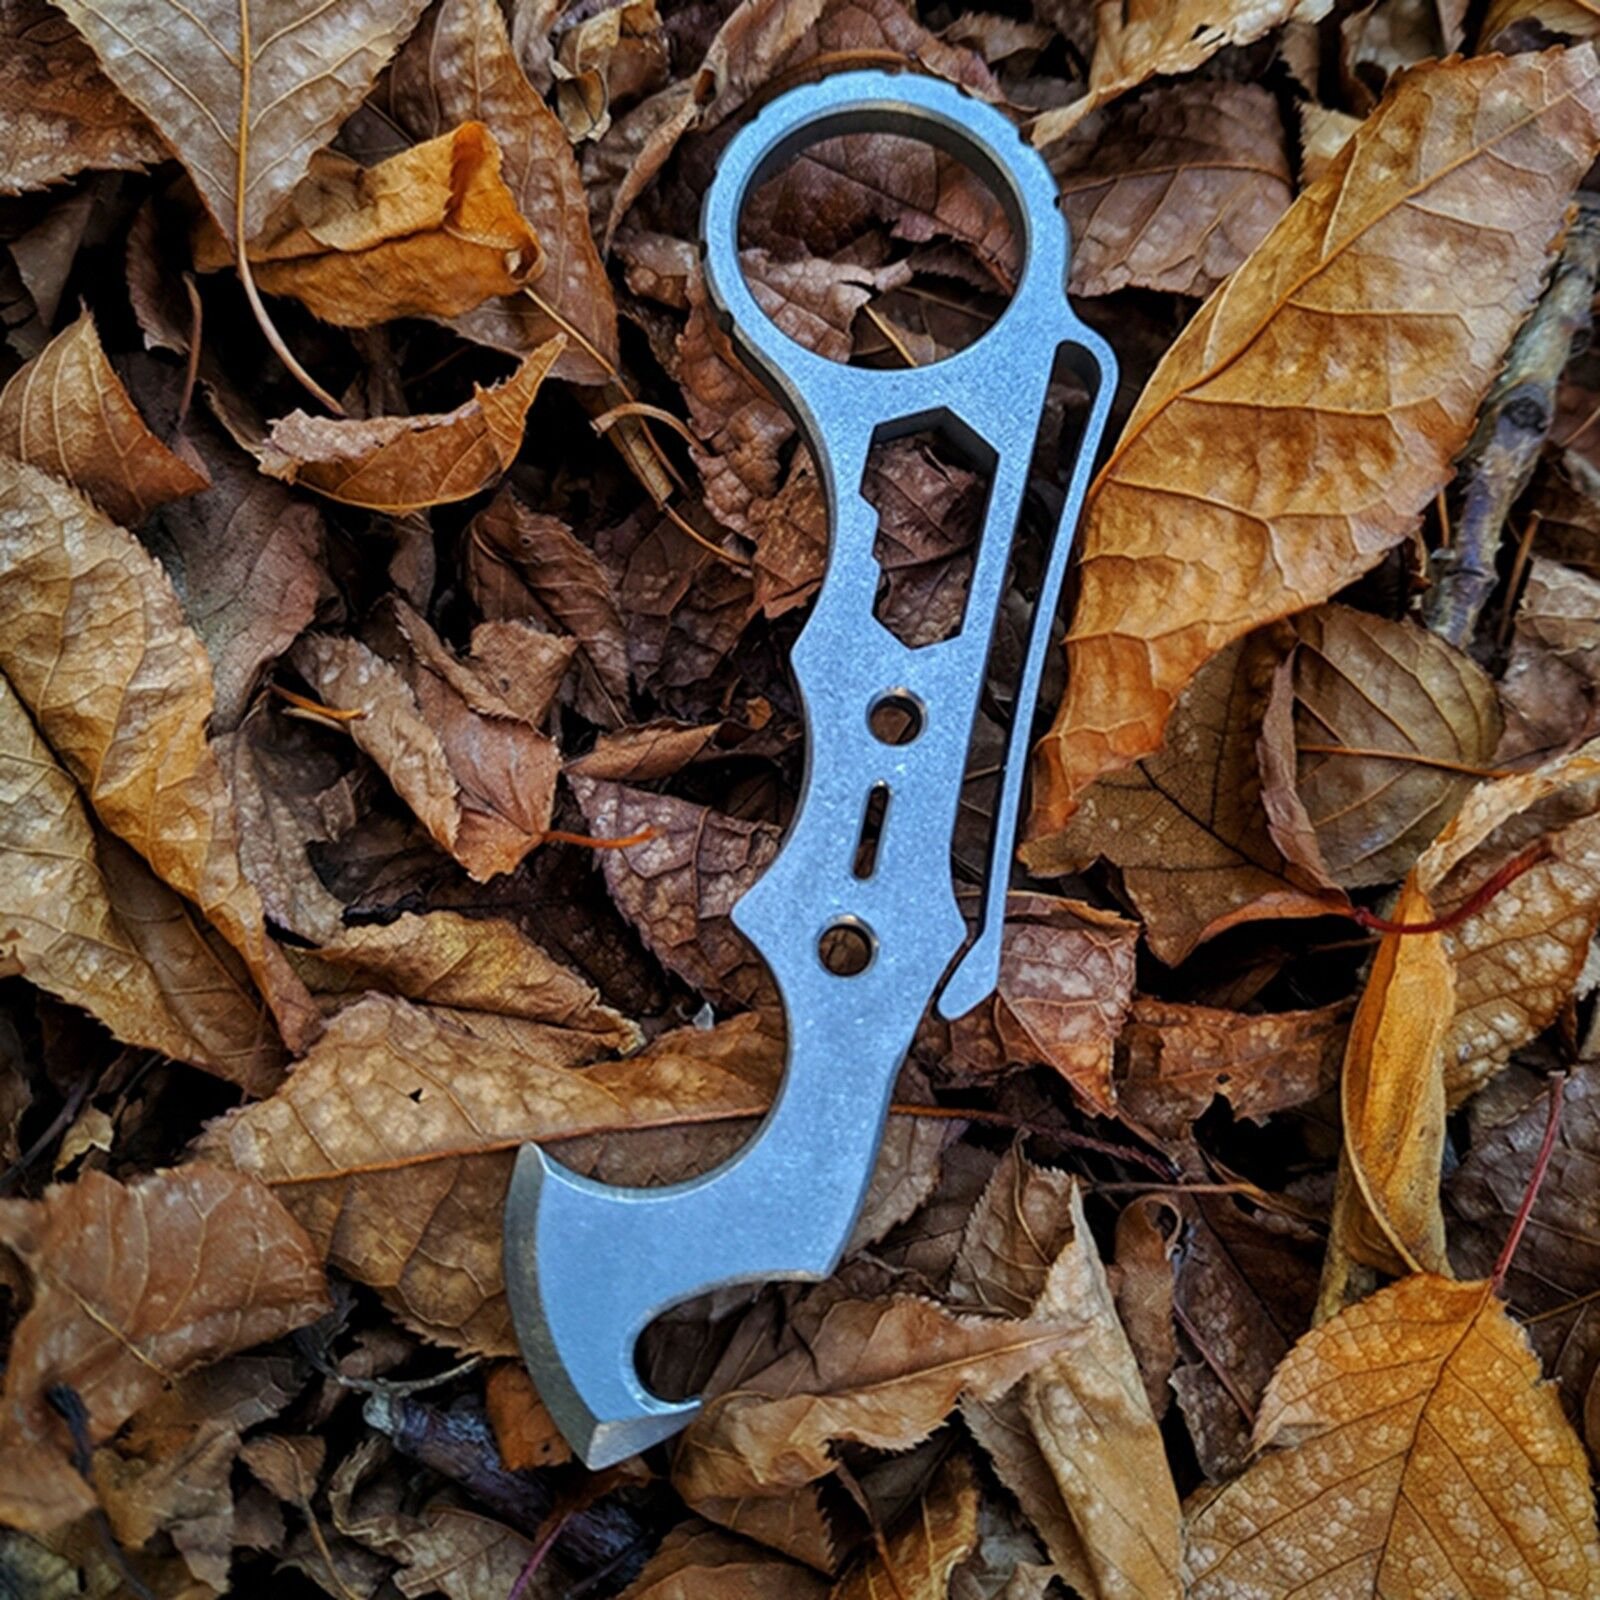 Titanium EDC multi tools  Opener break window survival portable outdoor  reasonable price